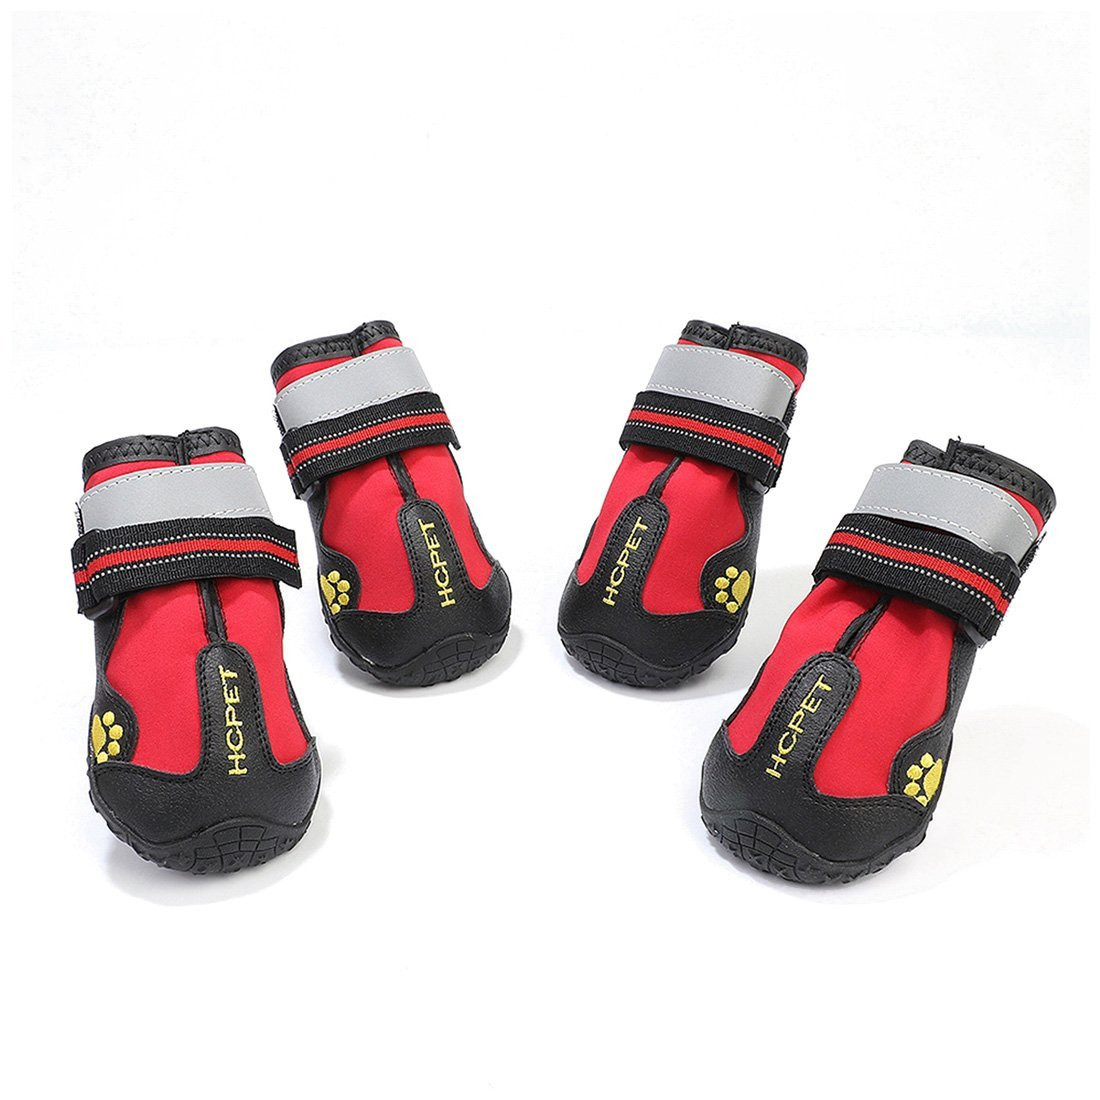 Red 6 Red 6 KTYX Pet shoes Dog shoes Waterproof Wearable Luminous Big Dog shoes pet Clothes (color   RED, Size   6)